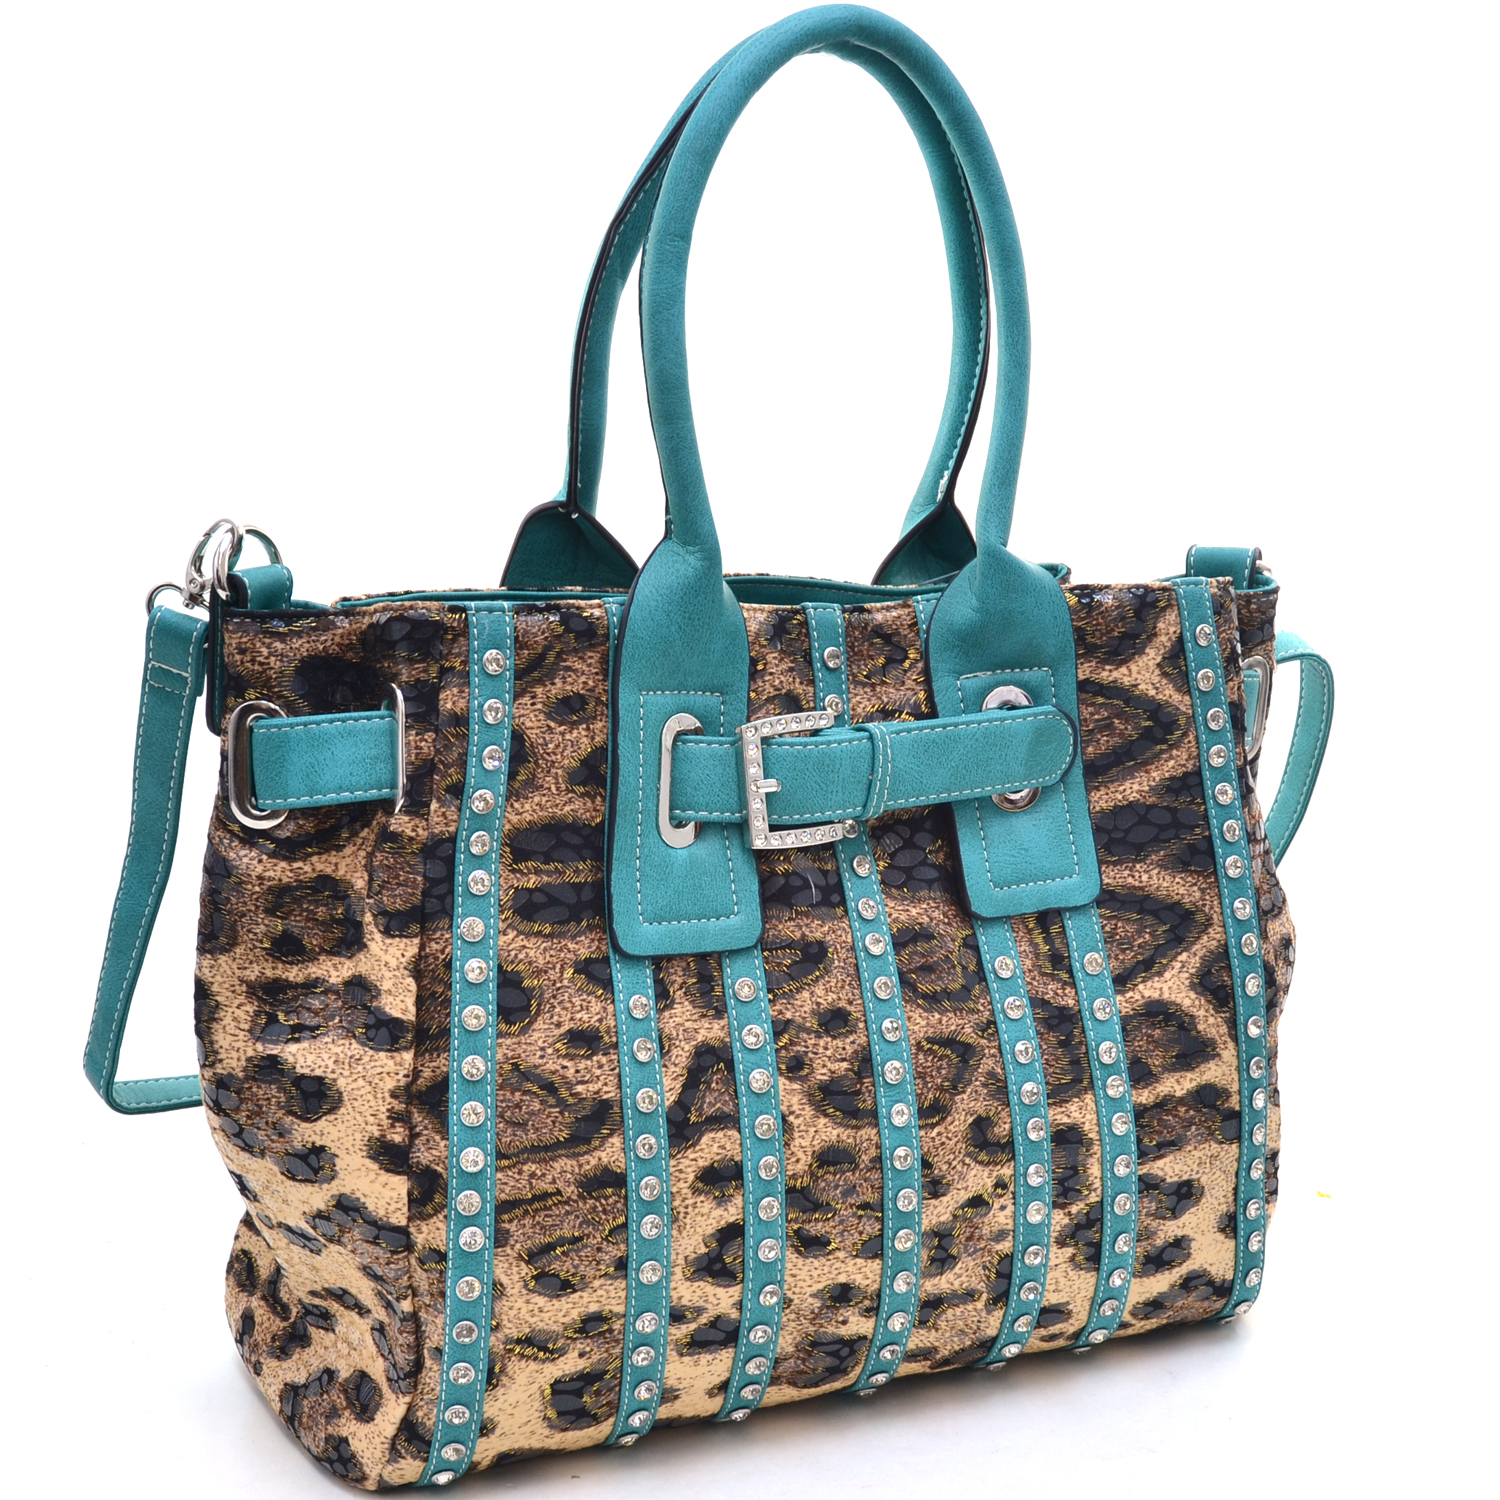 Women's Belted Leopard Print Fashion Tote Bag Striped with Rhinestones - Turquoise